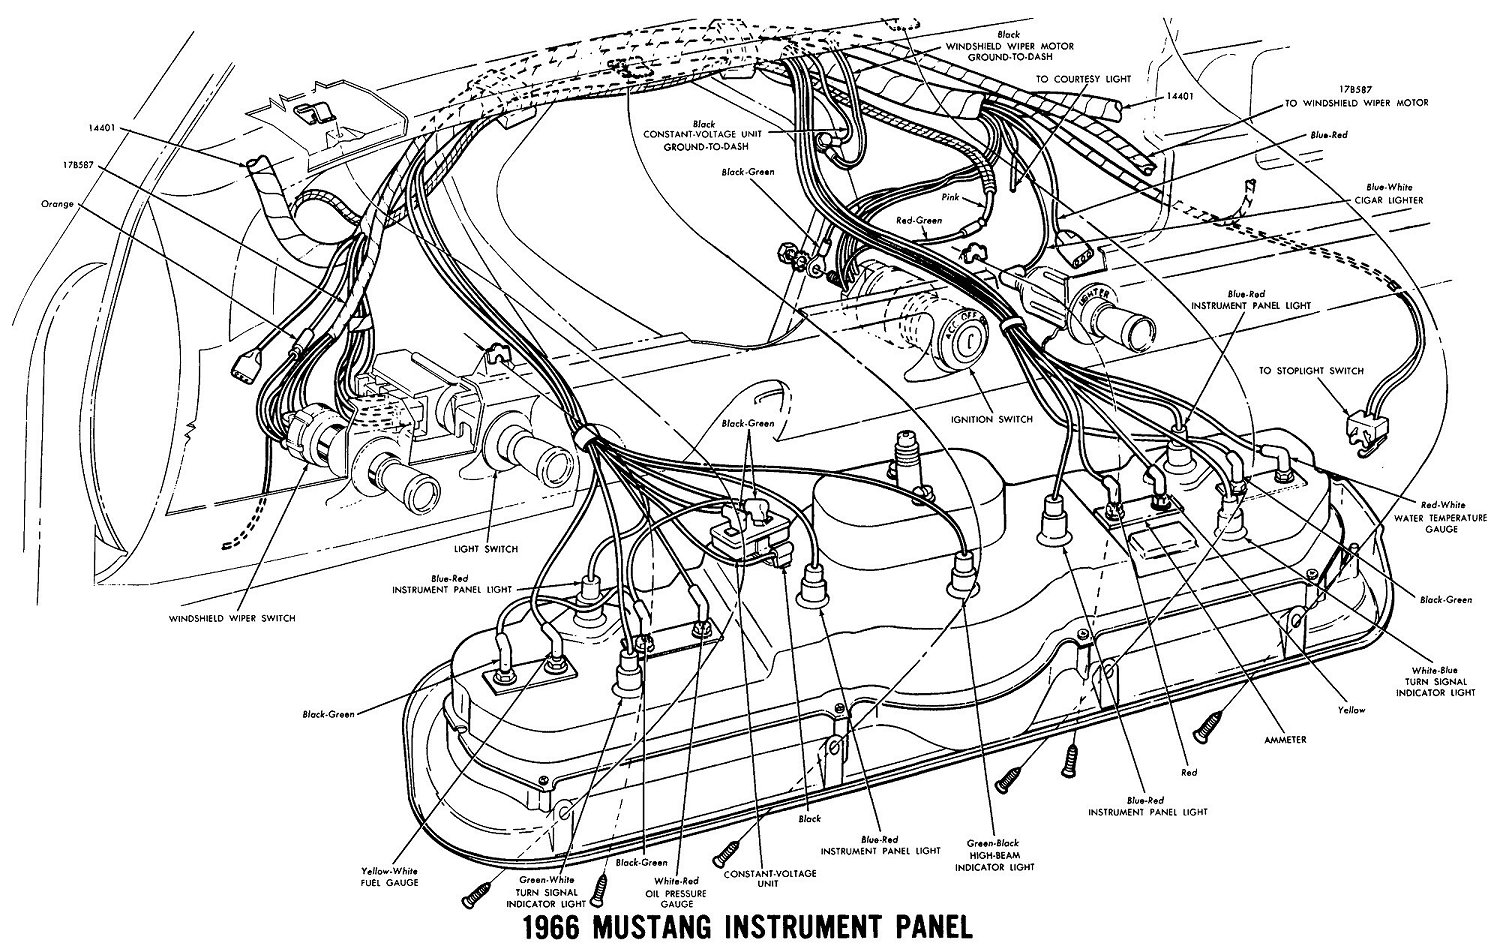 1966 chevelle wiring diagram 1967 chevelle wiring diagram pdf 1967 image wiring 66 mustang wiring diagrams 66 wiring diagrams on